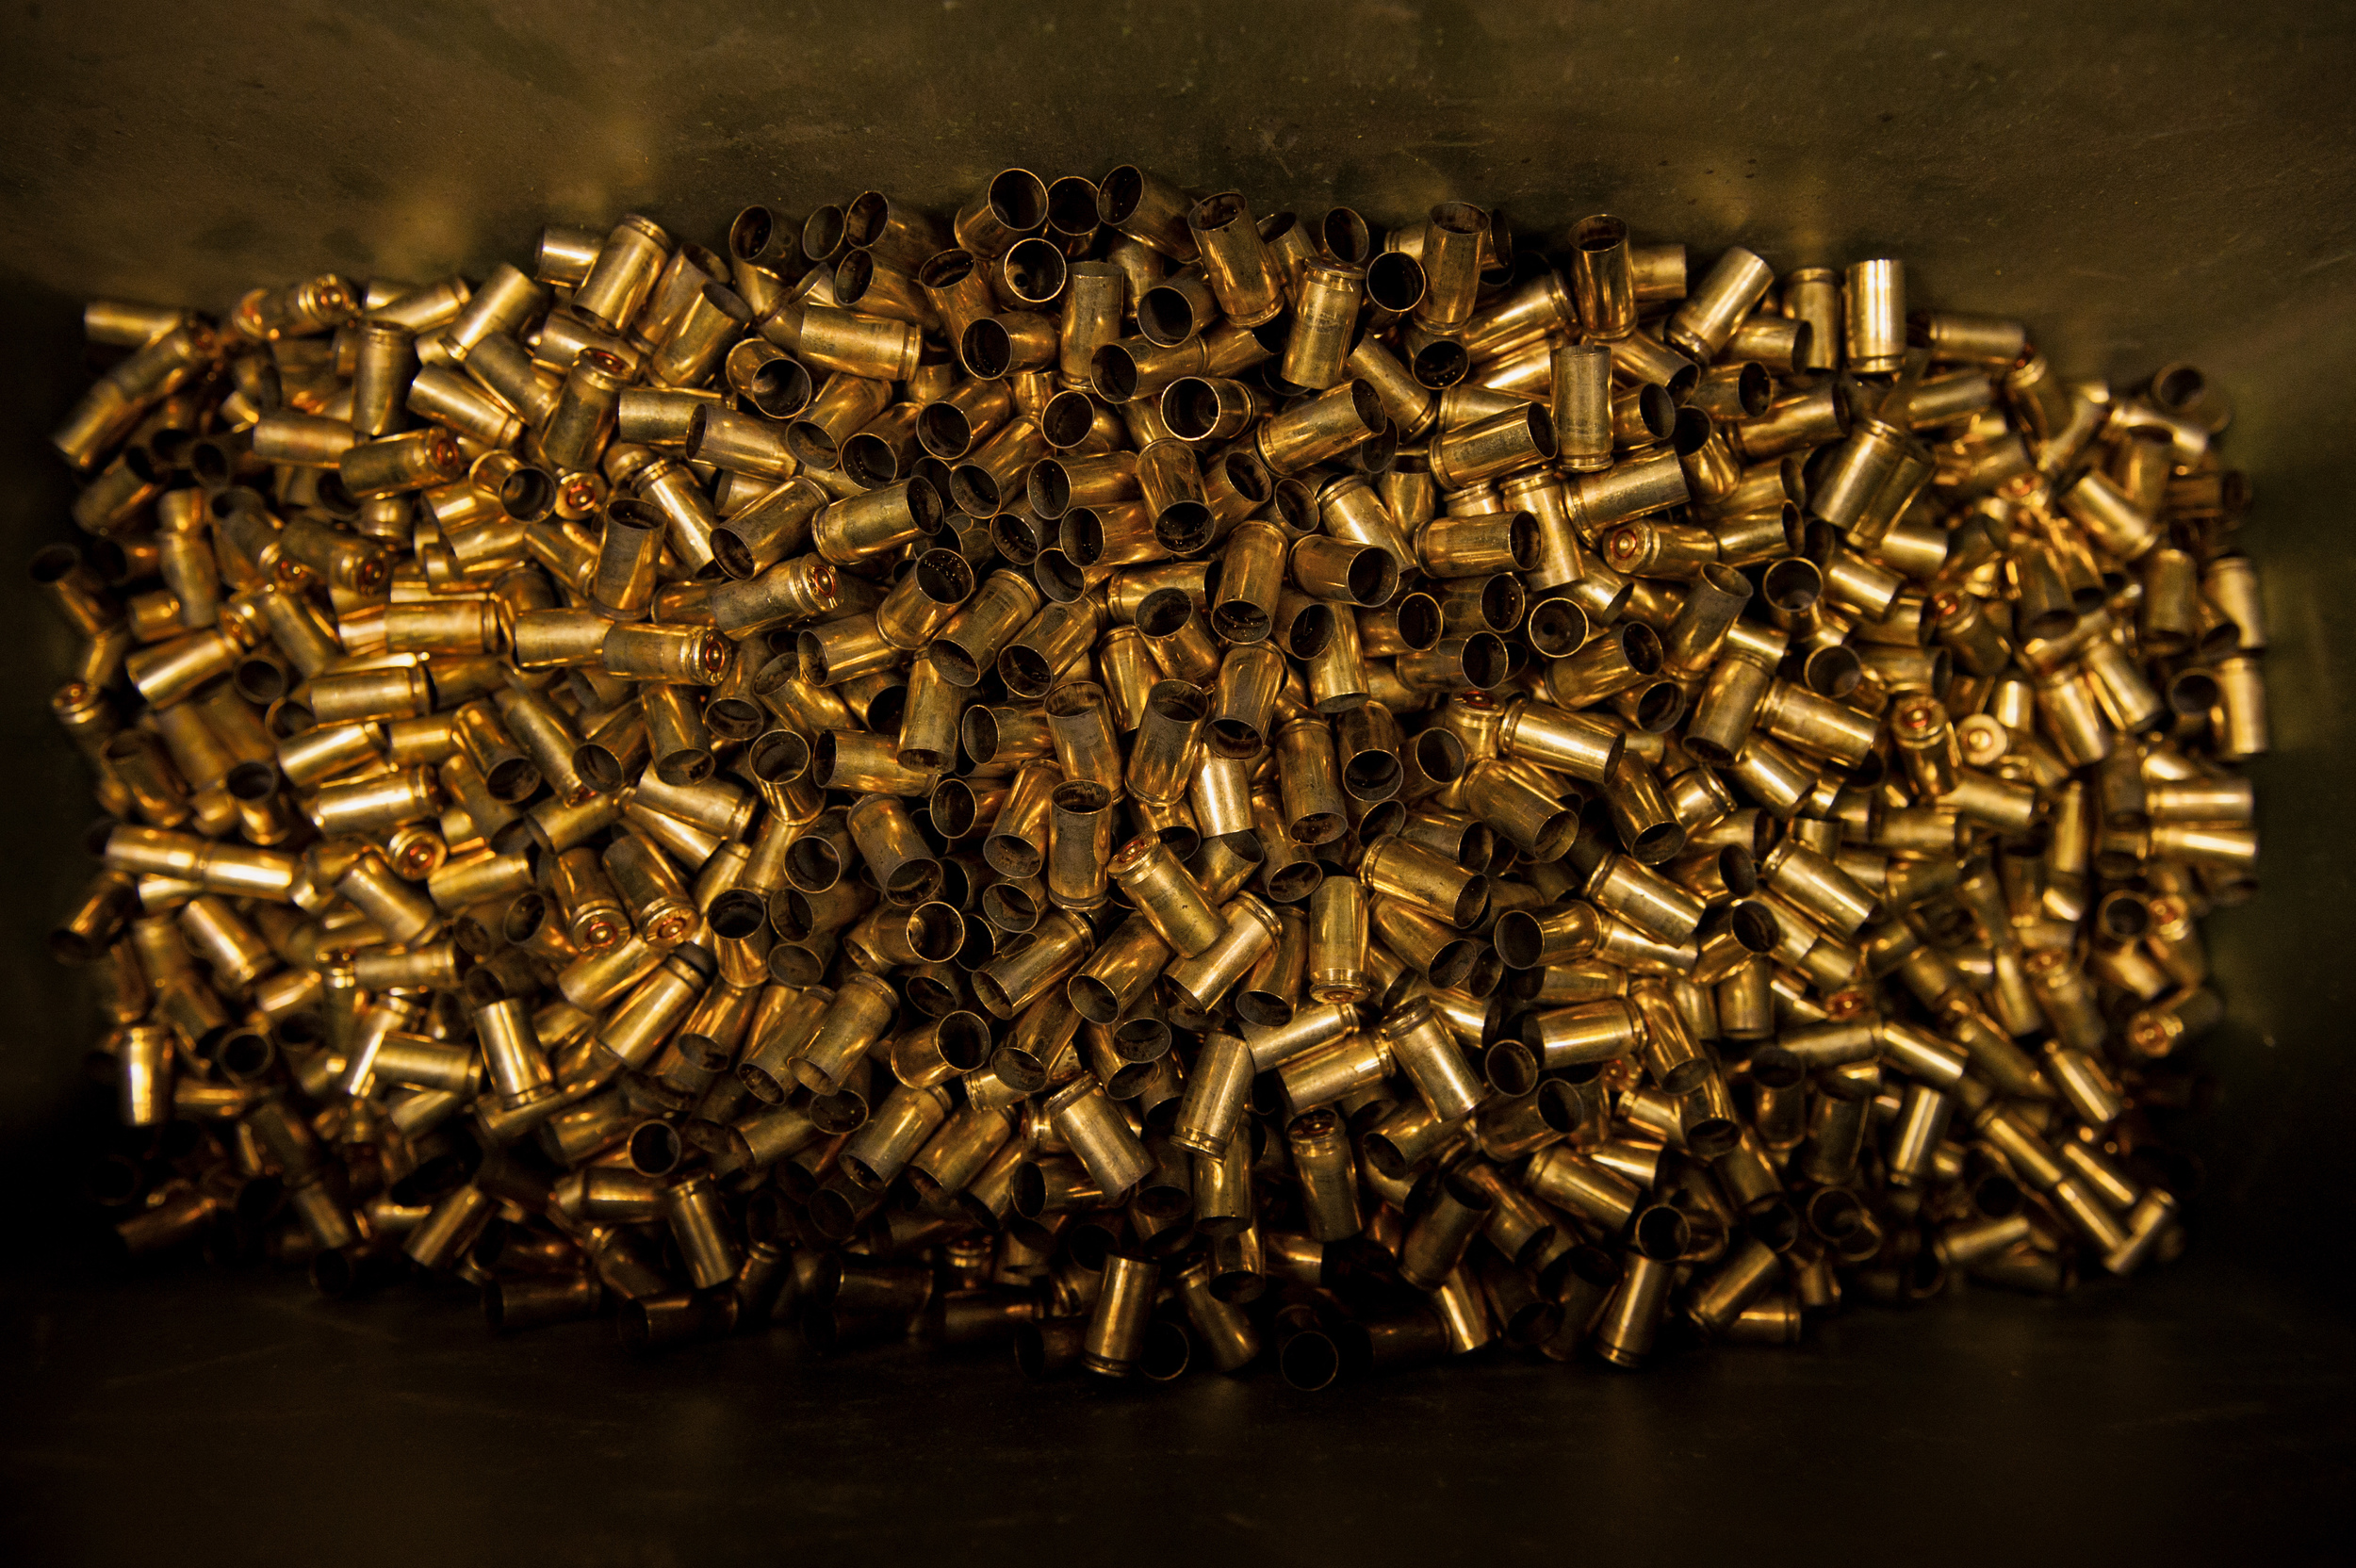 Bullet shells fill a bin at a firing range at Yokota Air Base, Japan, Oct. 8, 2015. Airmen use 5.56 millimeter when performing M-4 carbine qualifying sessions. (U.S. Air Force photo by Airman 1st Class Delano Scott/Released)